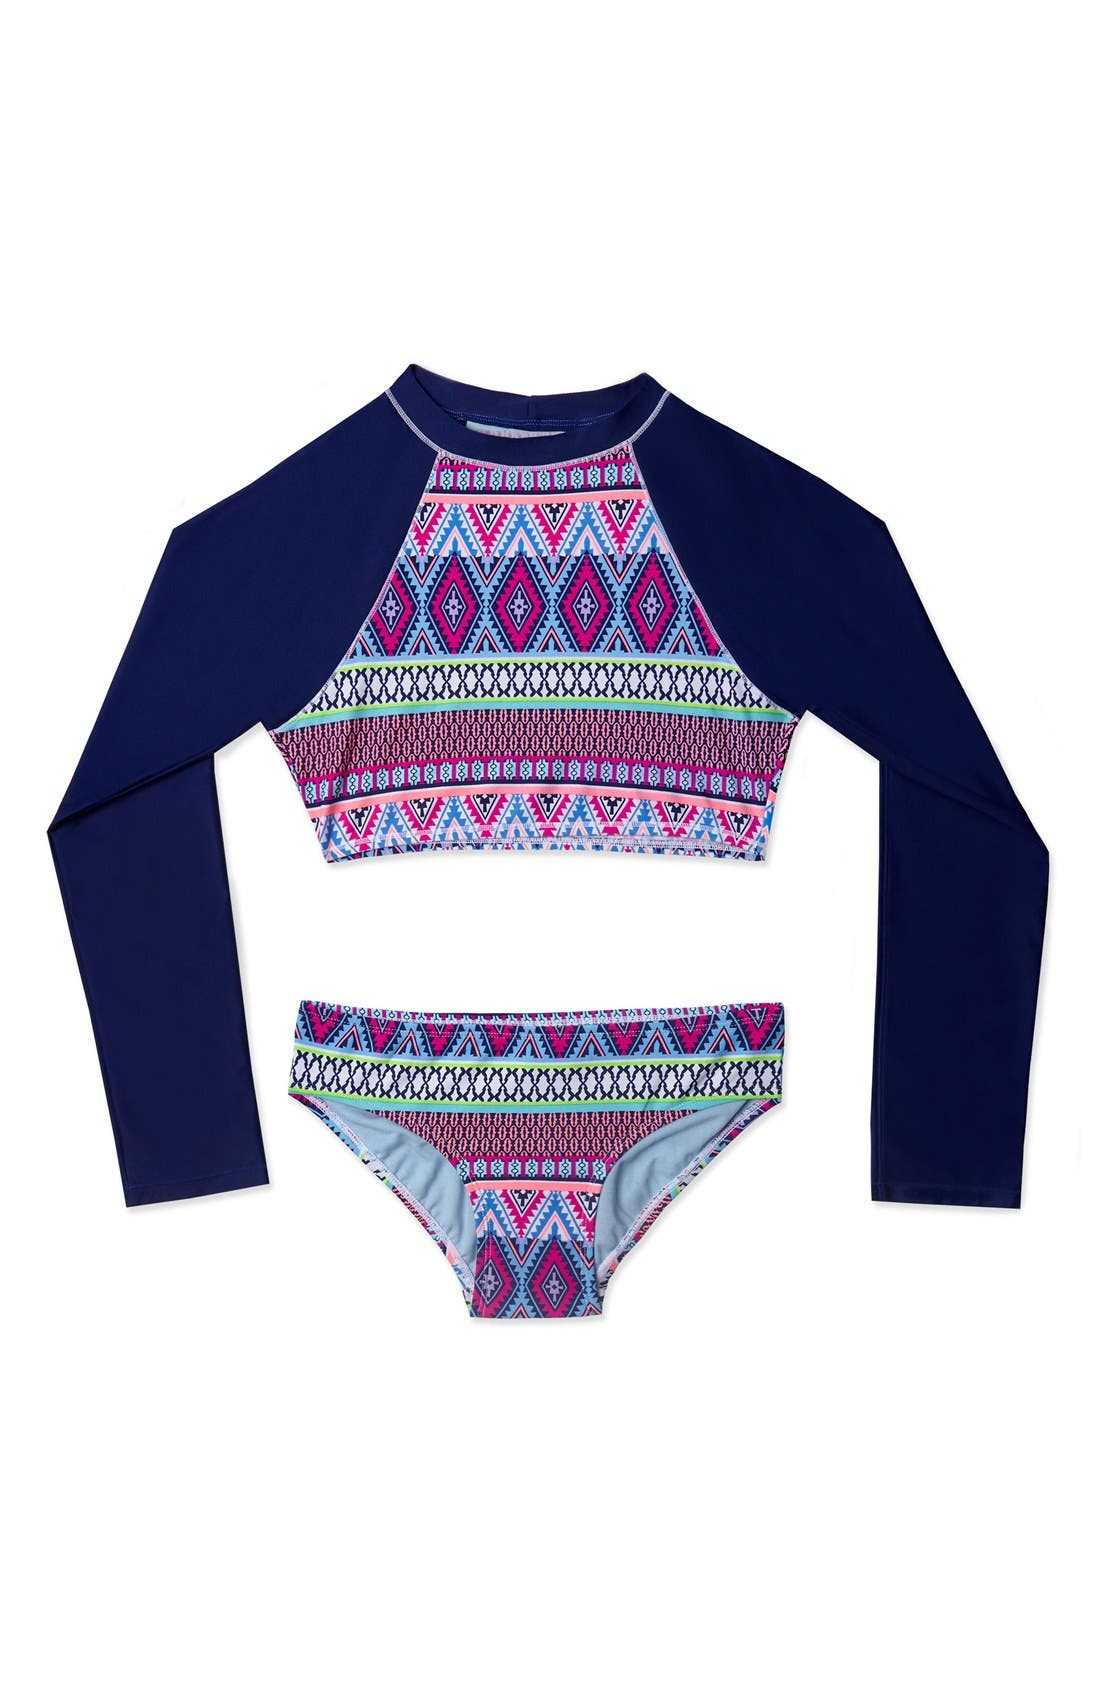 'Stripe Fusion' Two-Piece Rashguard Swimsuit,                             Main thumbnail 1, color,                             476